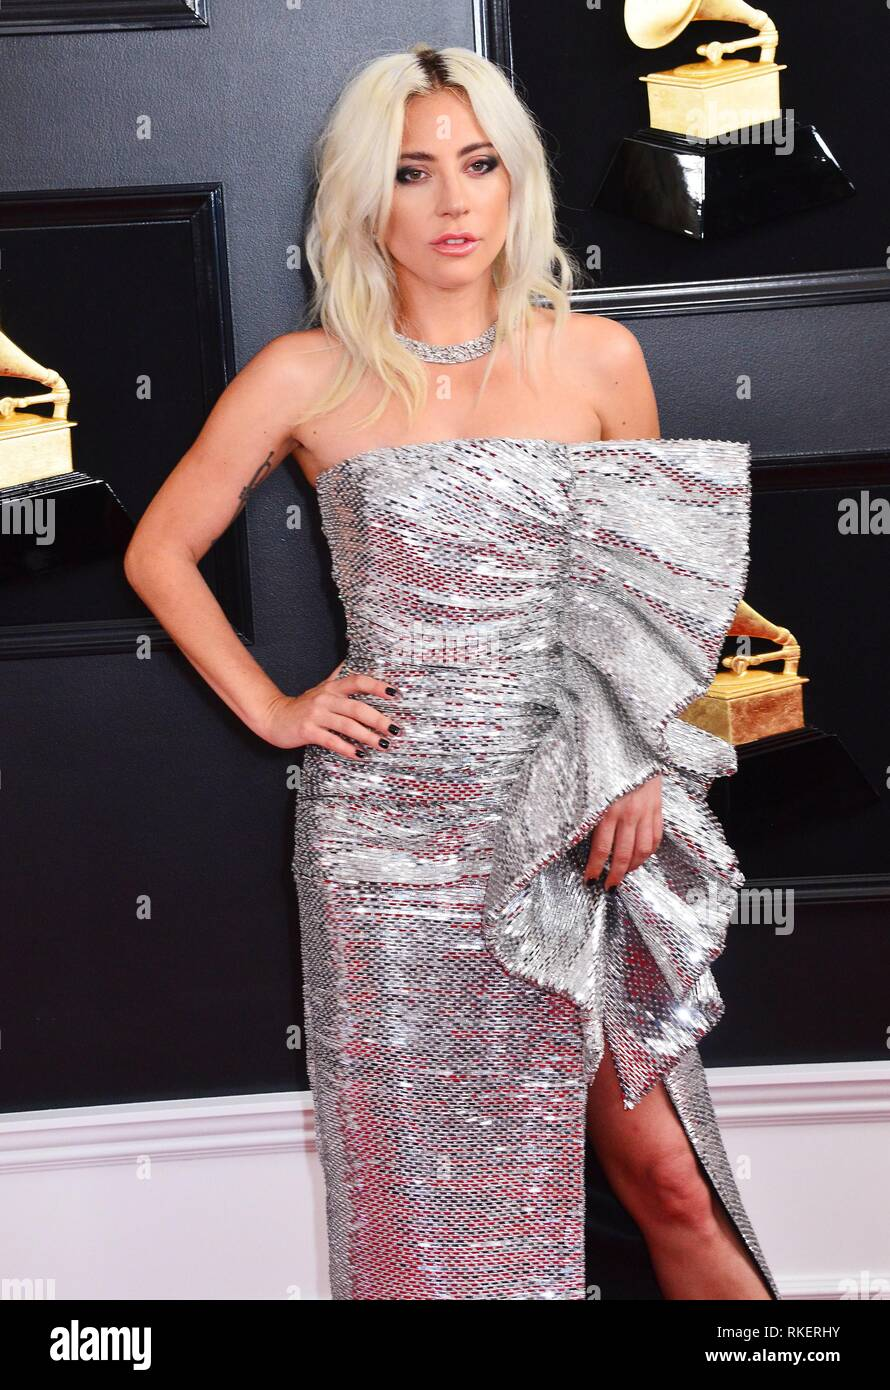 los angeles ca usa 10th feb 2019 lady gaga at arrivals for 61st annual grammy awards alamy